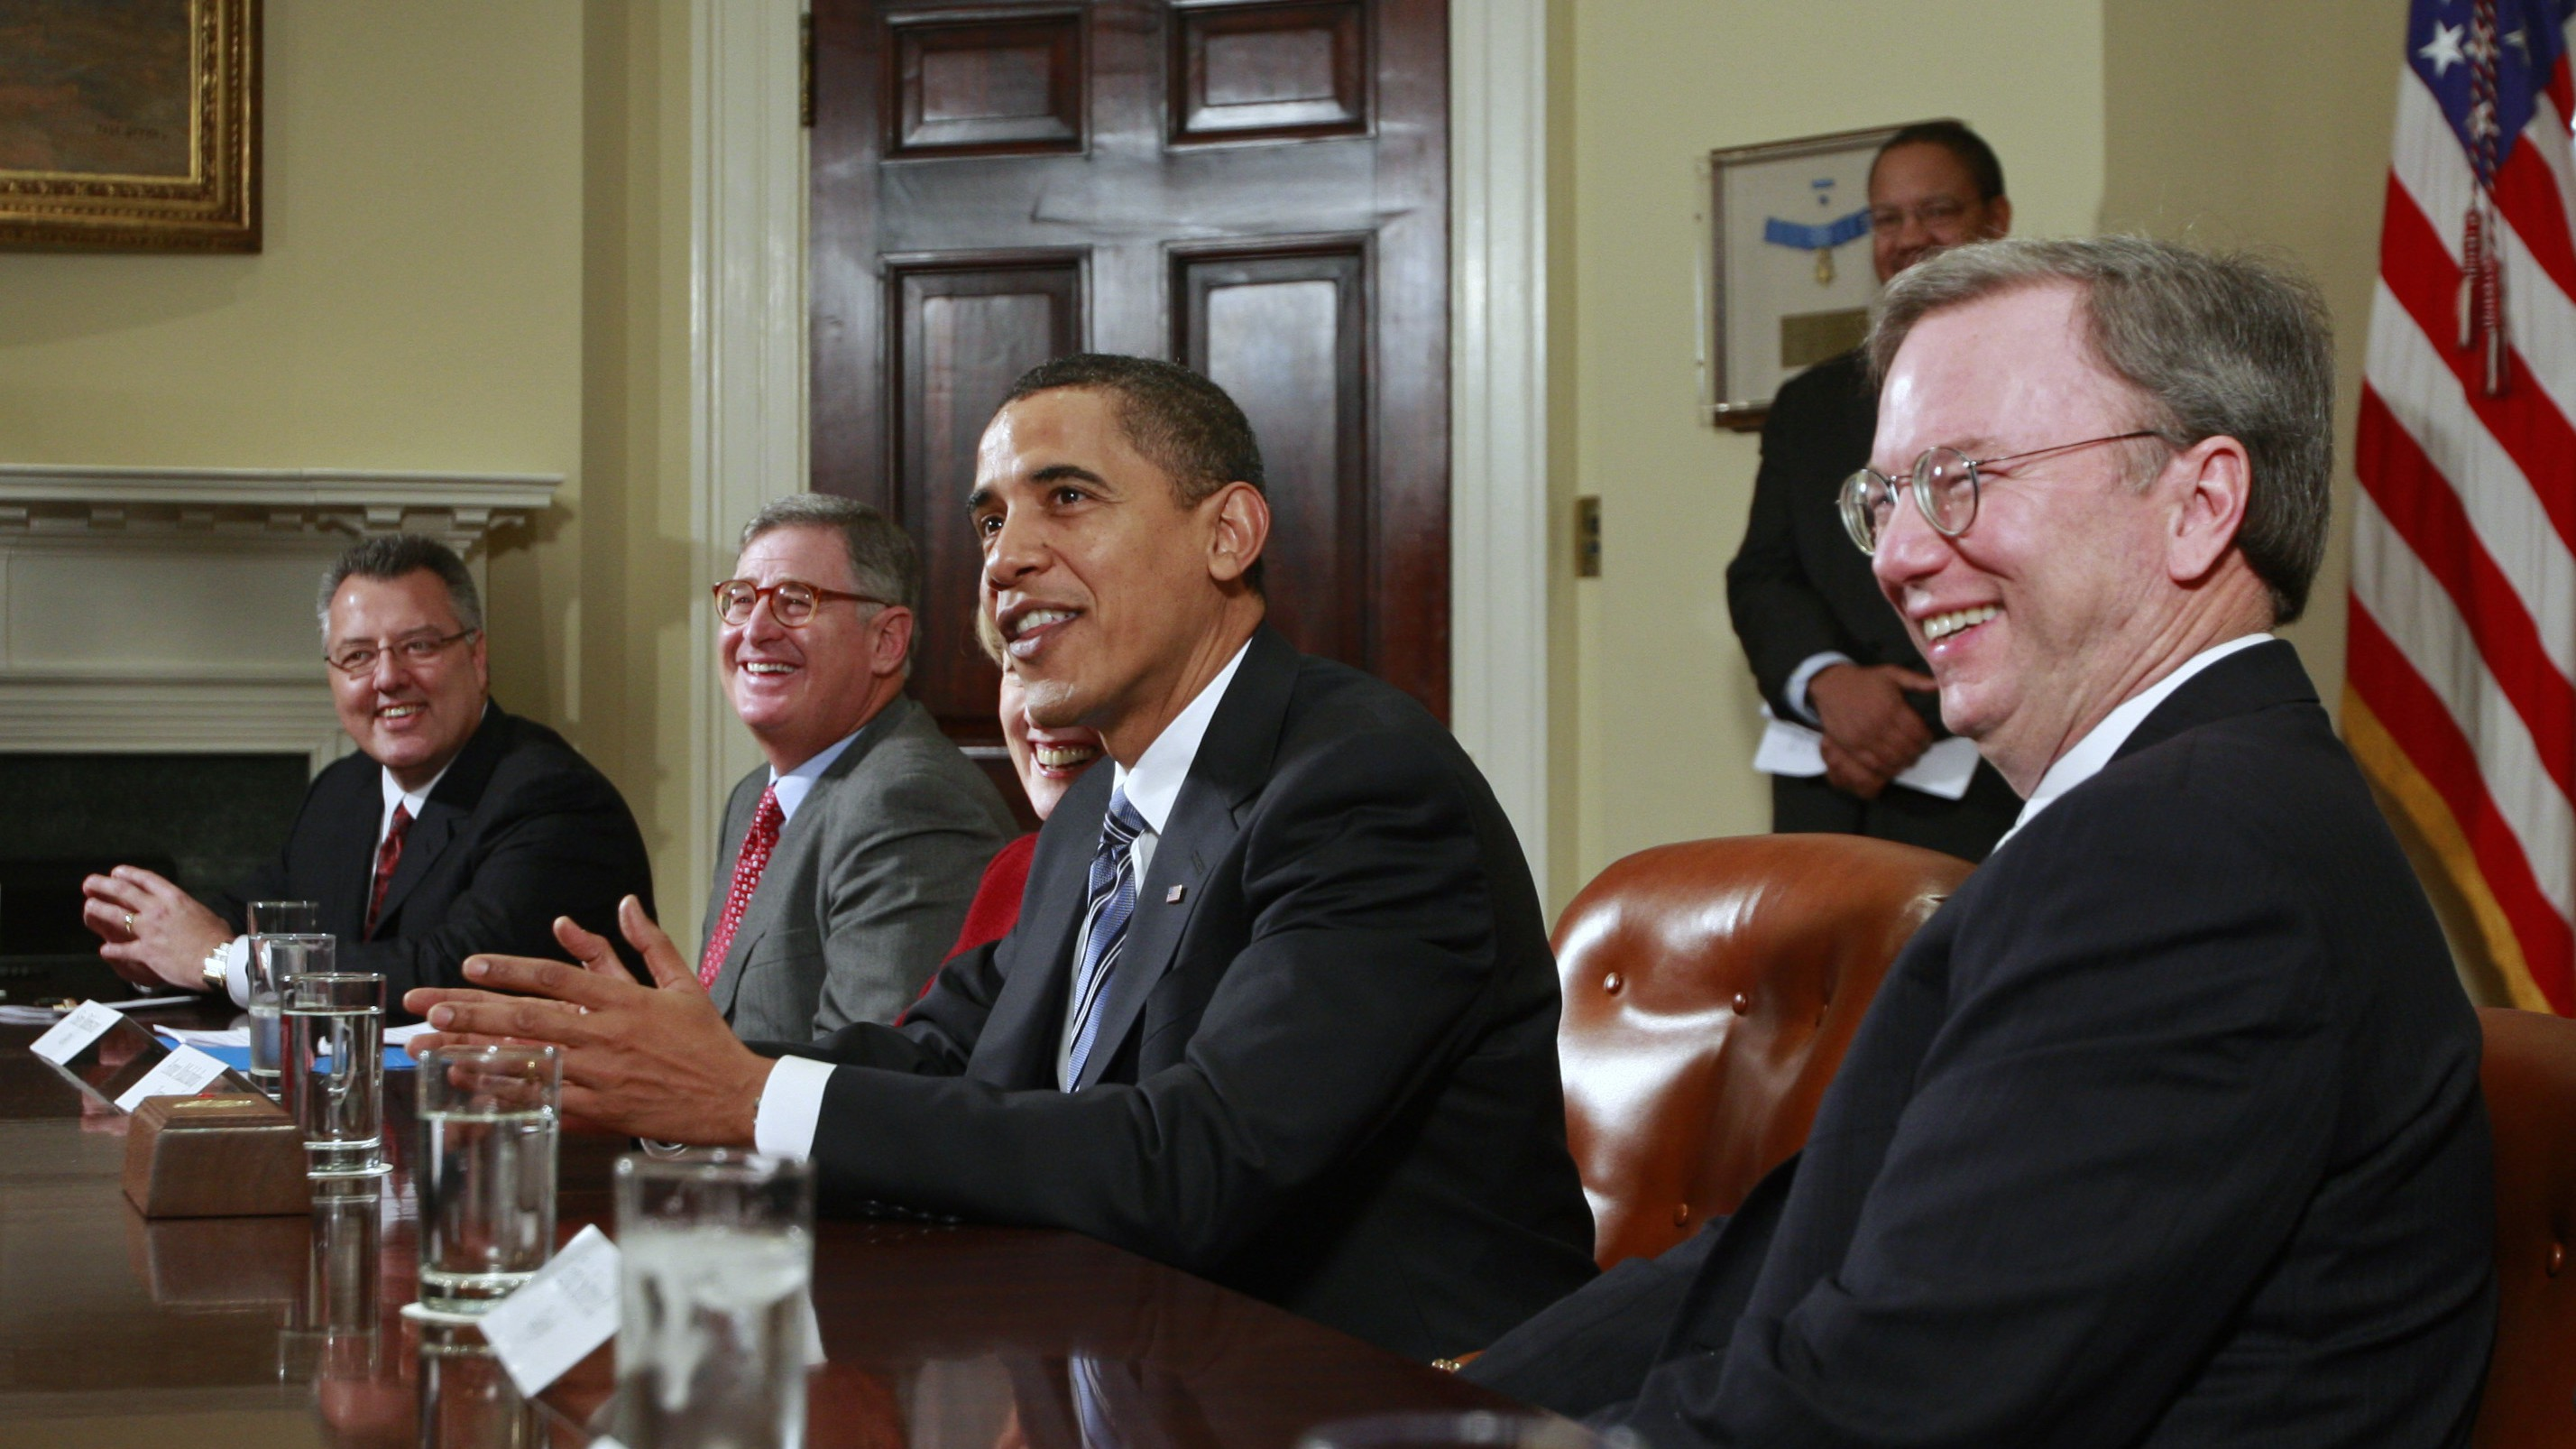 U.S. President Barack Obama (C) speaks to the media alongside Google CEO Eric Schmidt (R) and other company CEOs during an economic meeting in the Roosevelt Room of the White House in Washington January 28, 2009. REUTERS/Jason Reed (UNITED STATES) - RTR23ZCJ